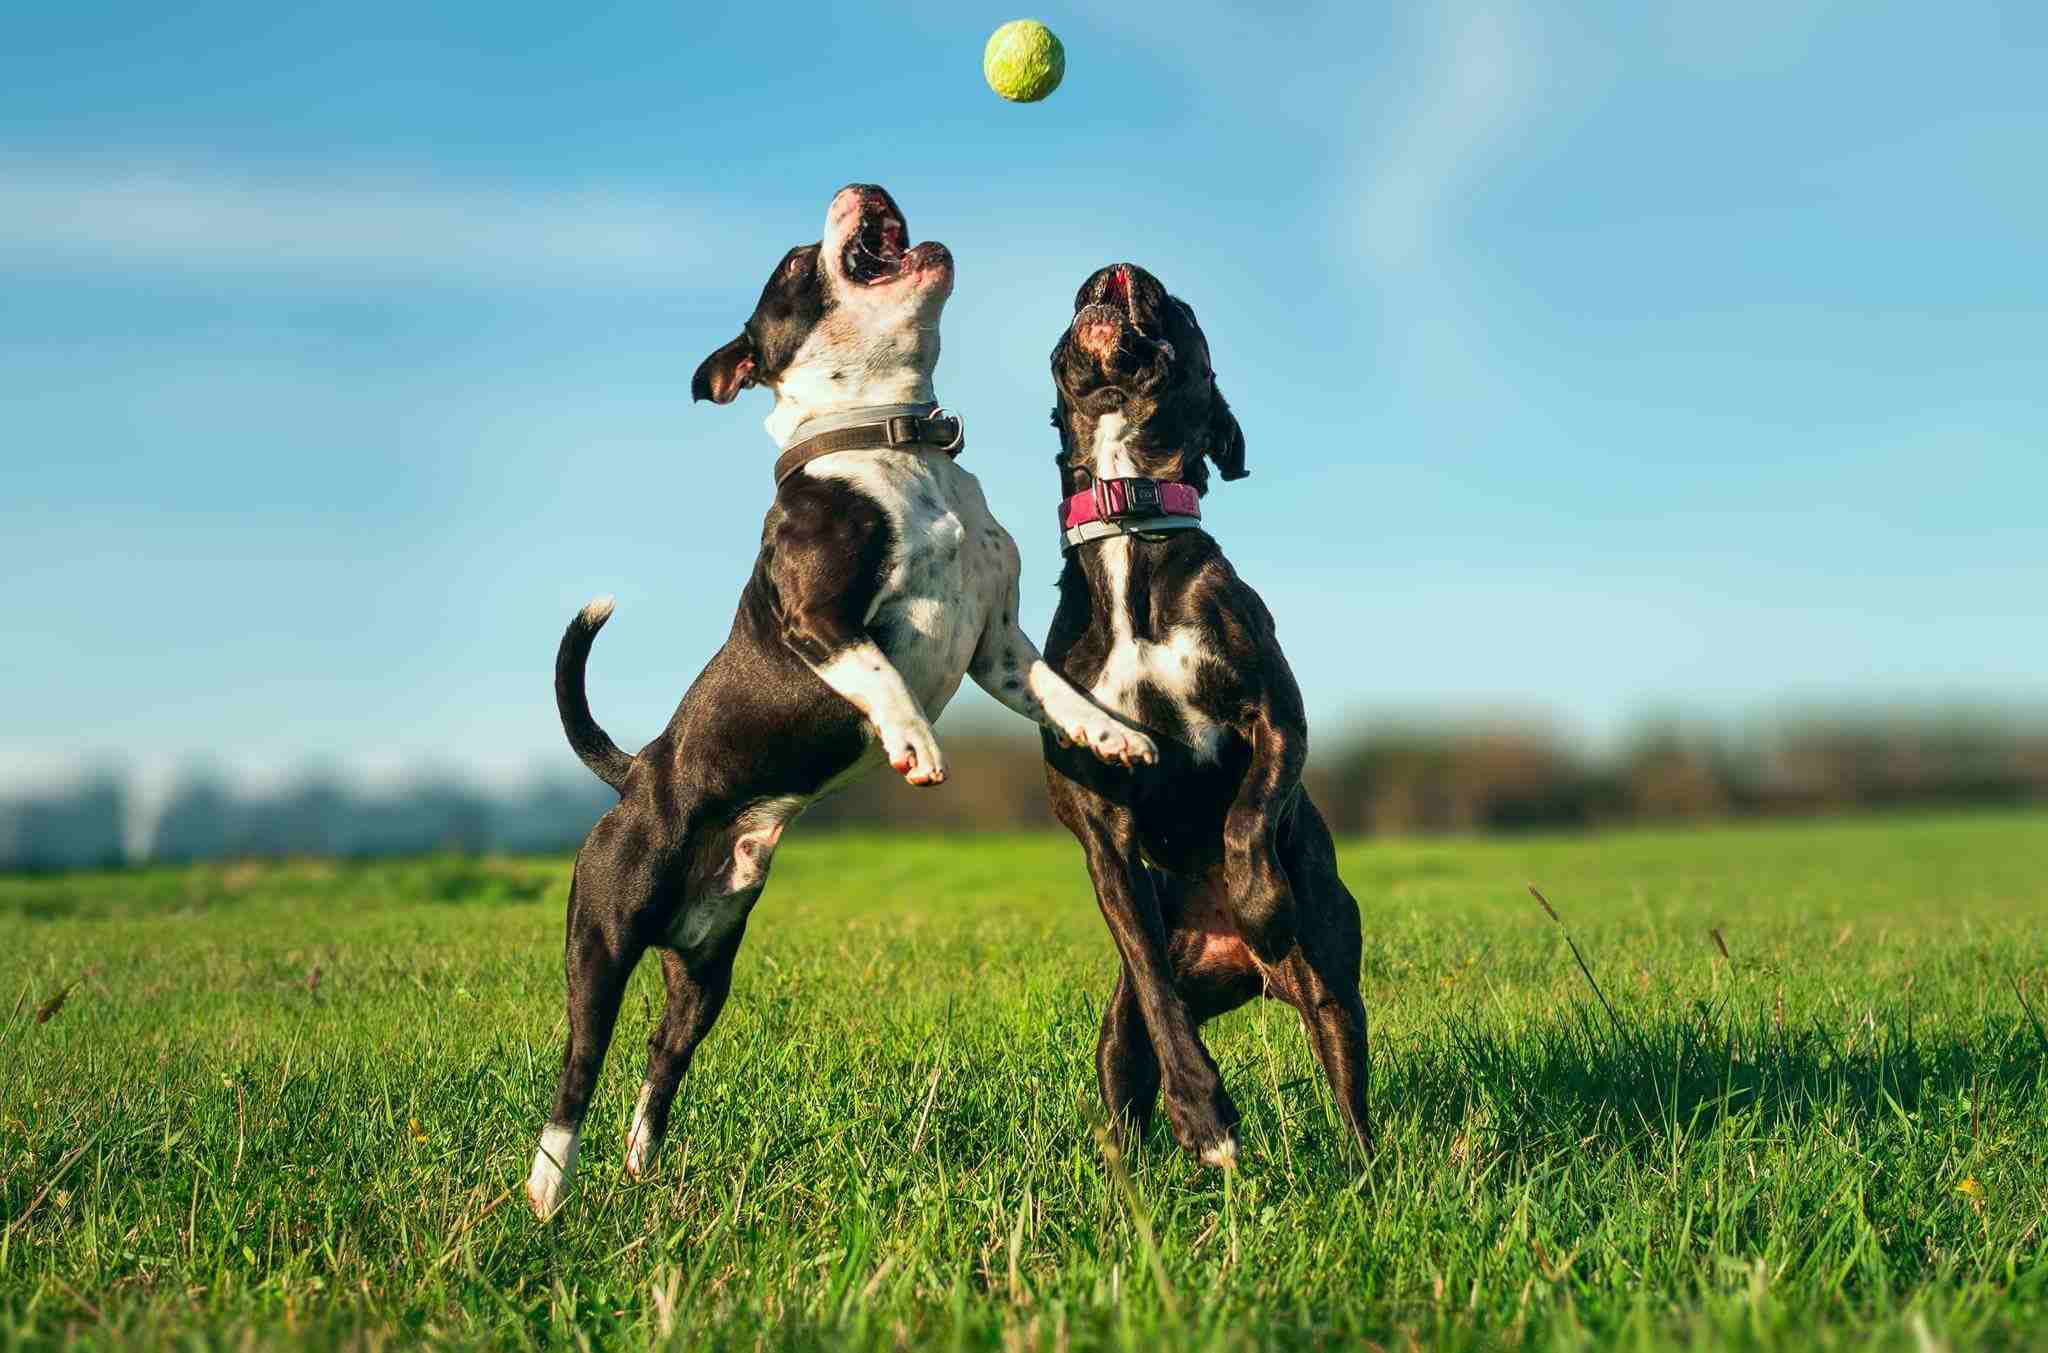 Dogs chasing a ball in the grass